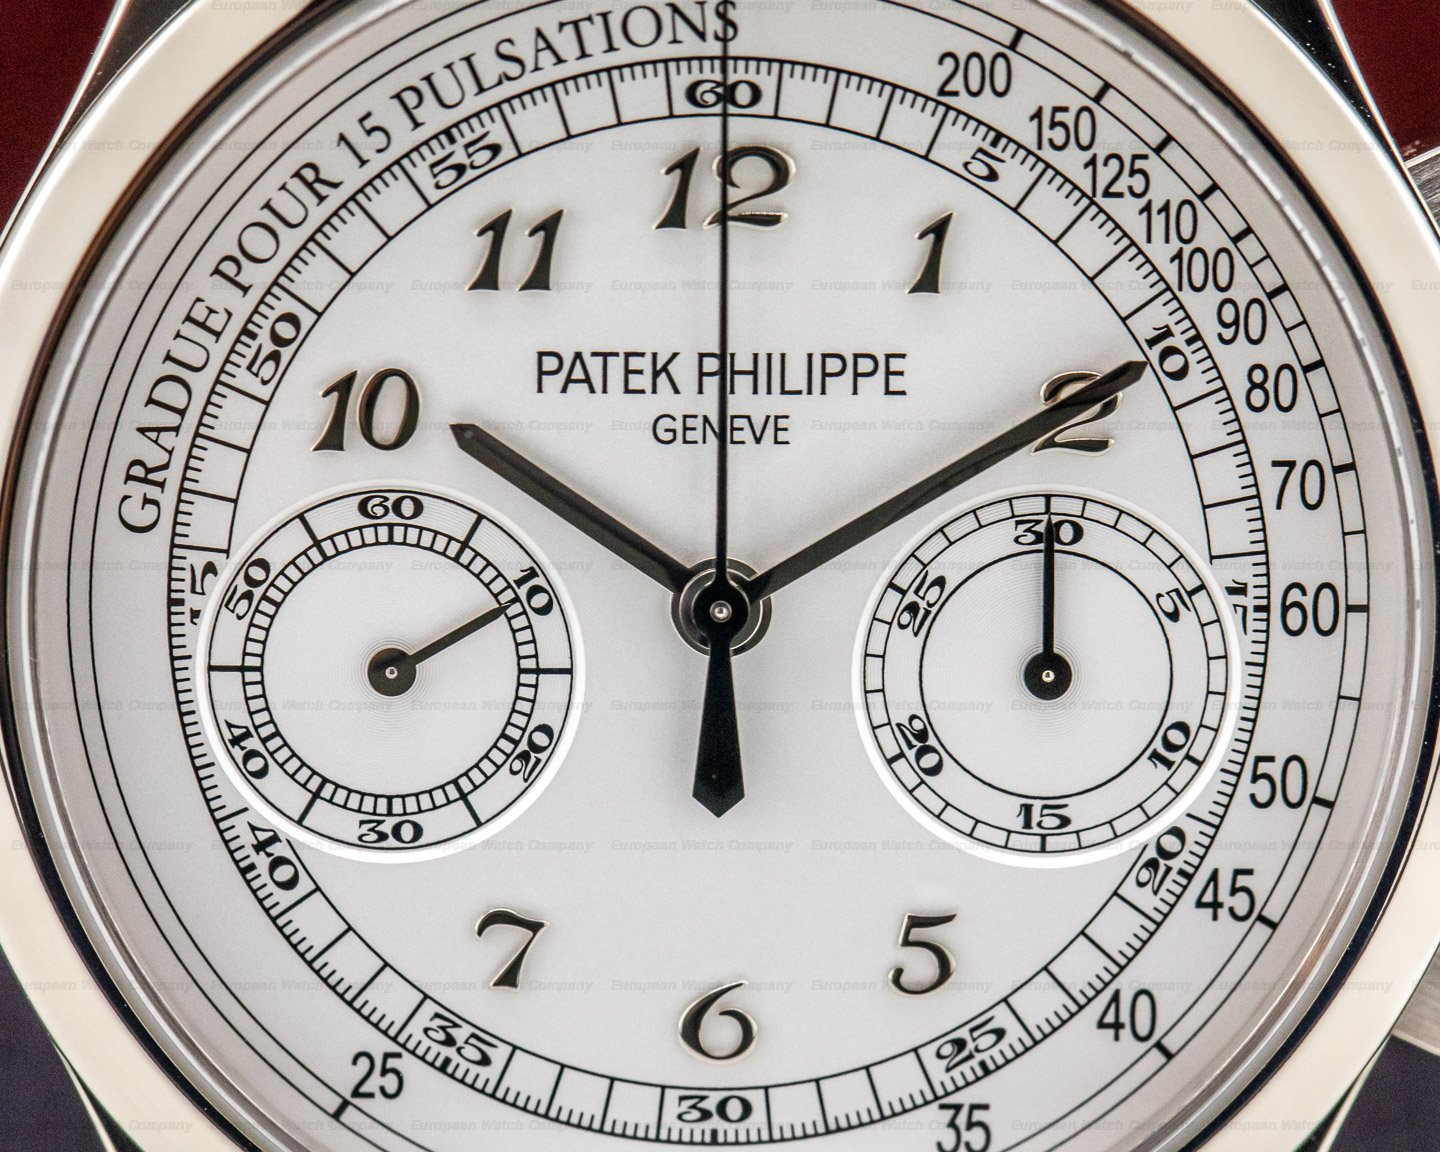 Patek Philippe 5170G-001 Chronograph 18K White Gold / Silver Pulsation